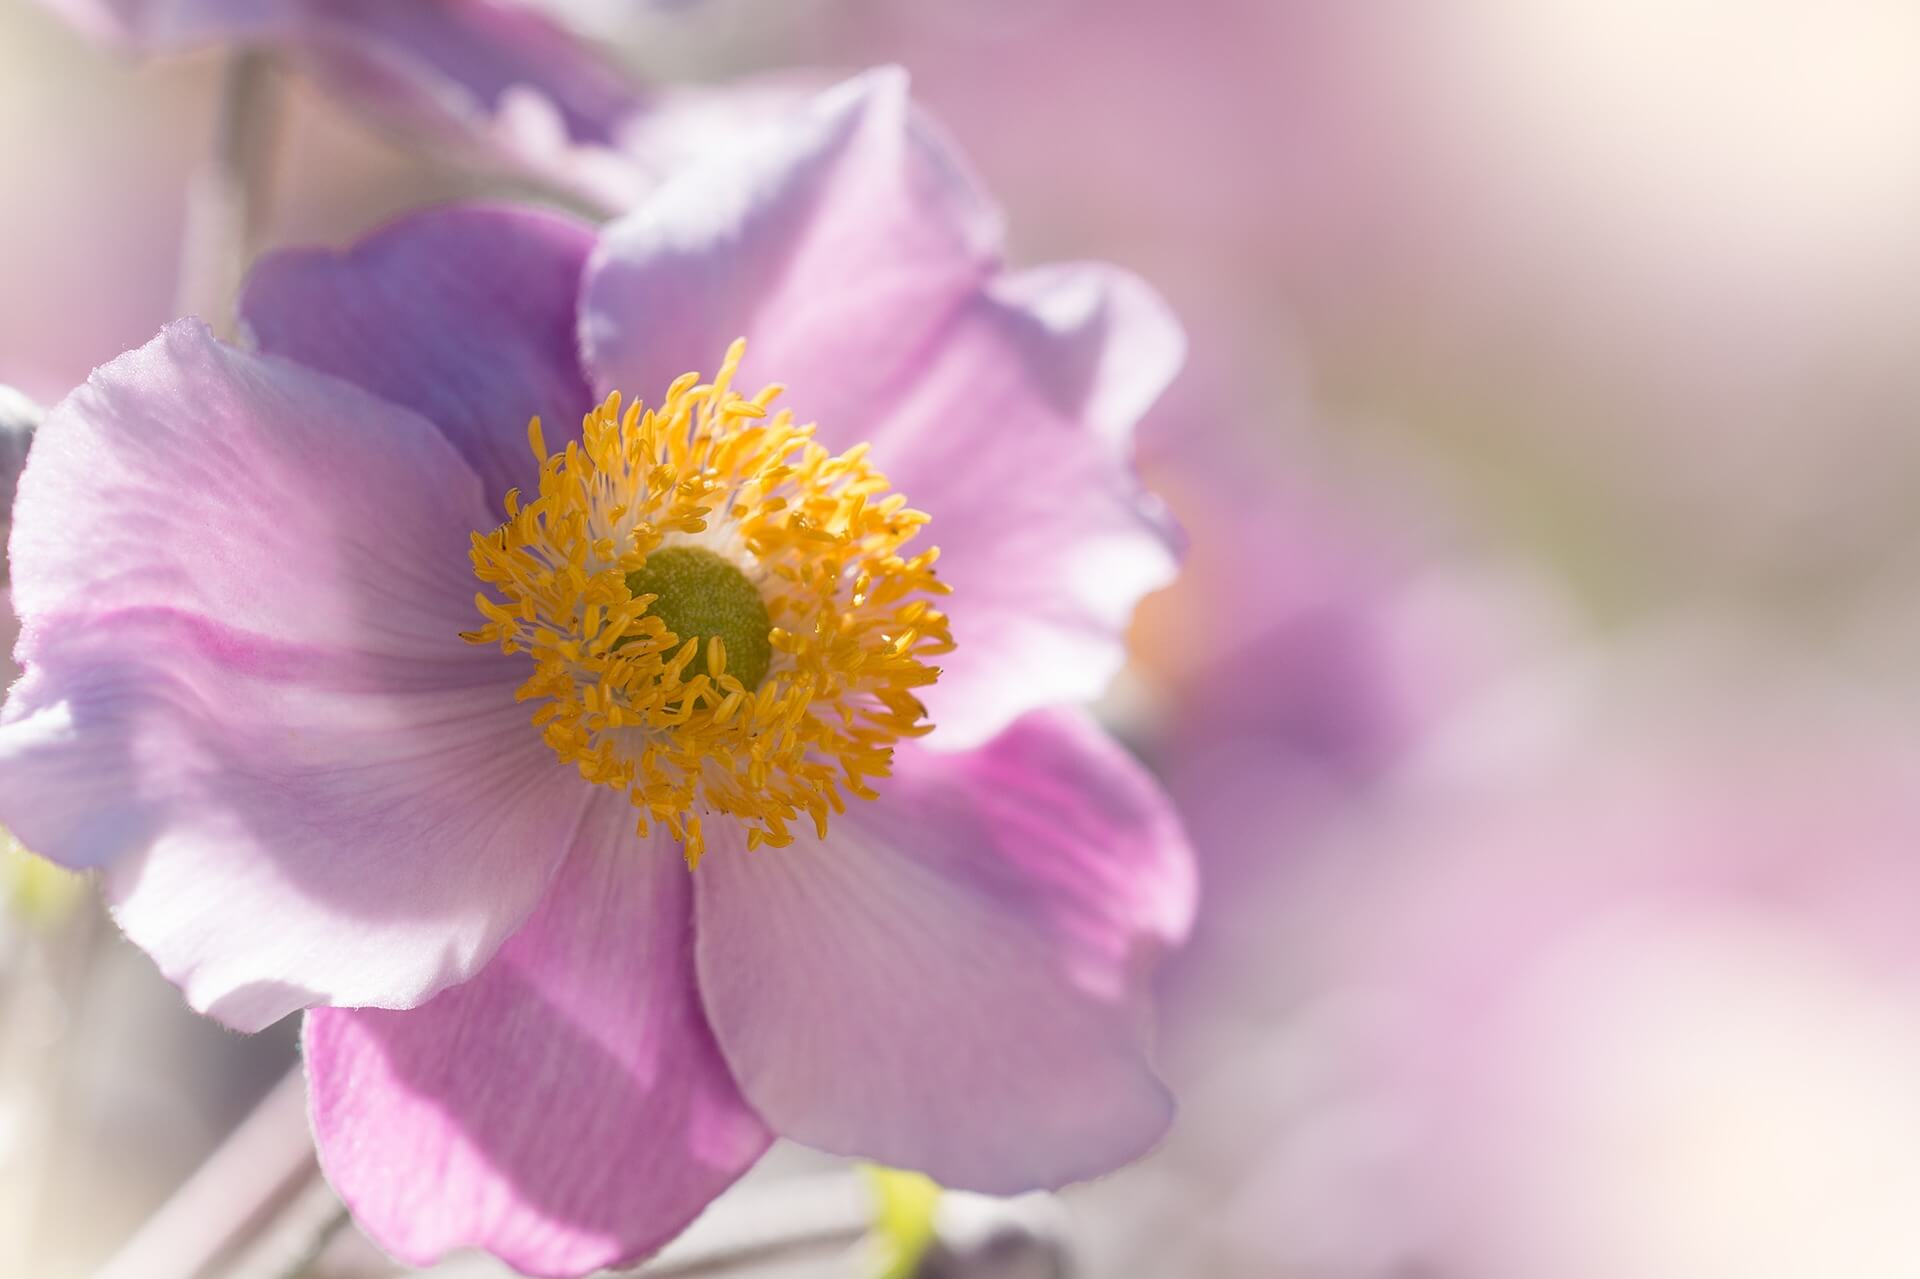 Rosa Herbst Anemone